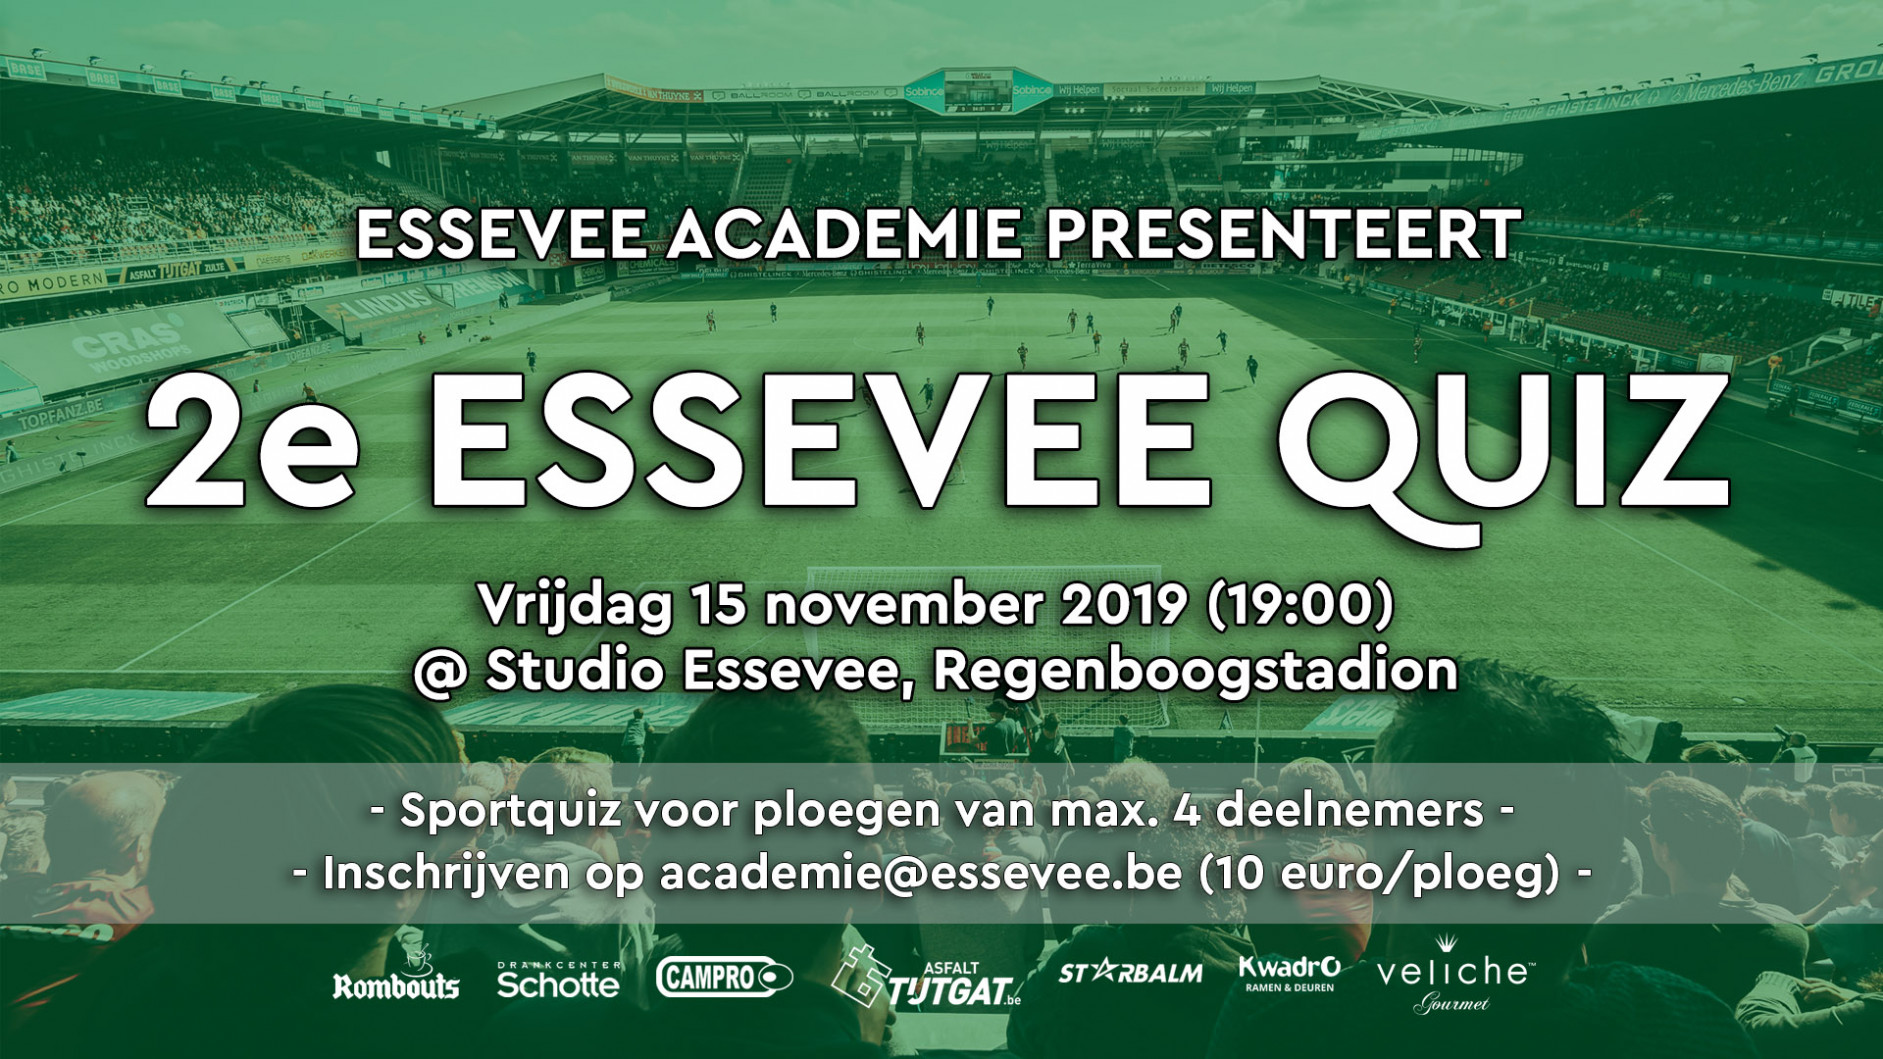 Eventbanner-EsseveeQuiz2019-met partners.jpg